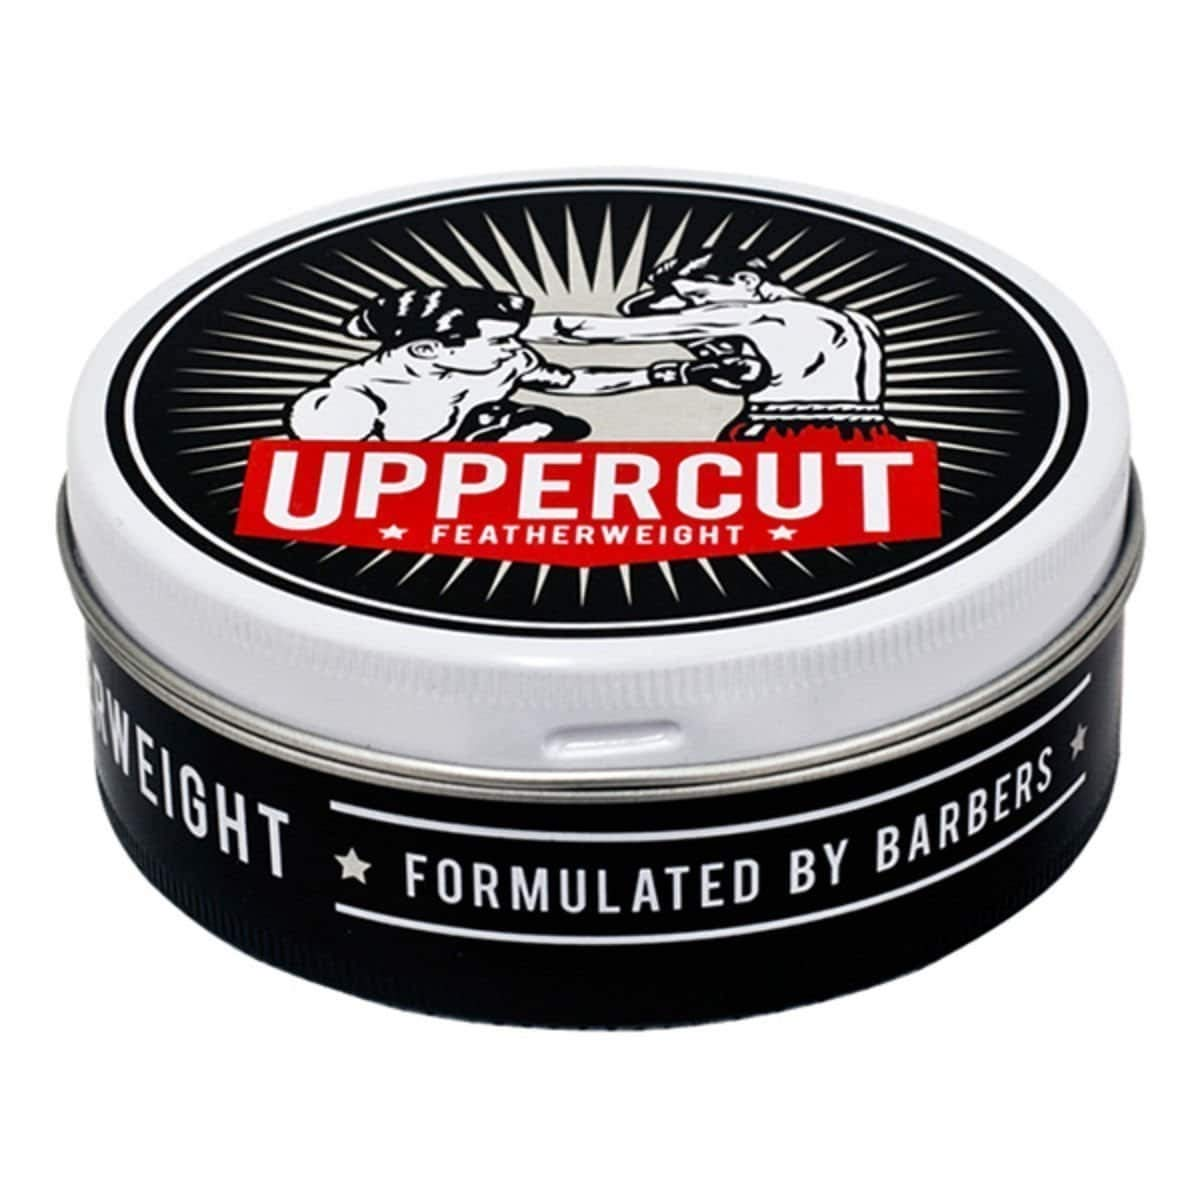 Uppercut Deluxe Featherweight 2.5oz/70g UCF